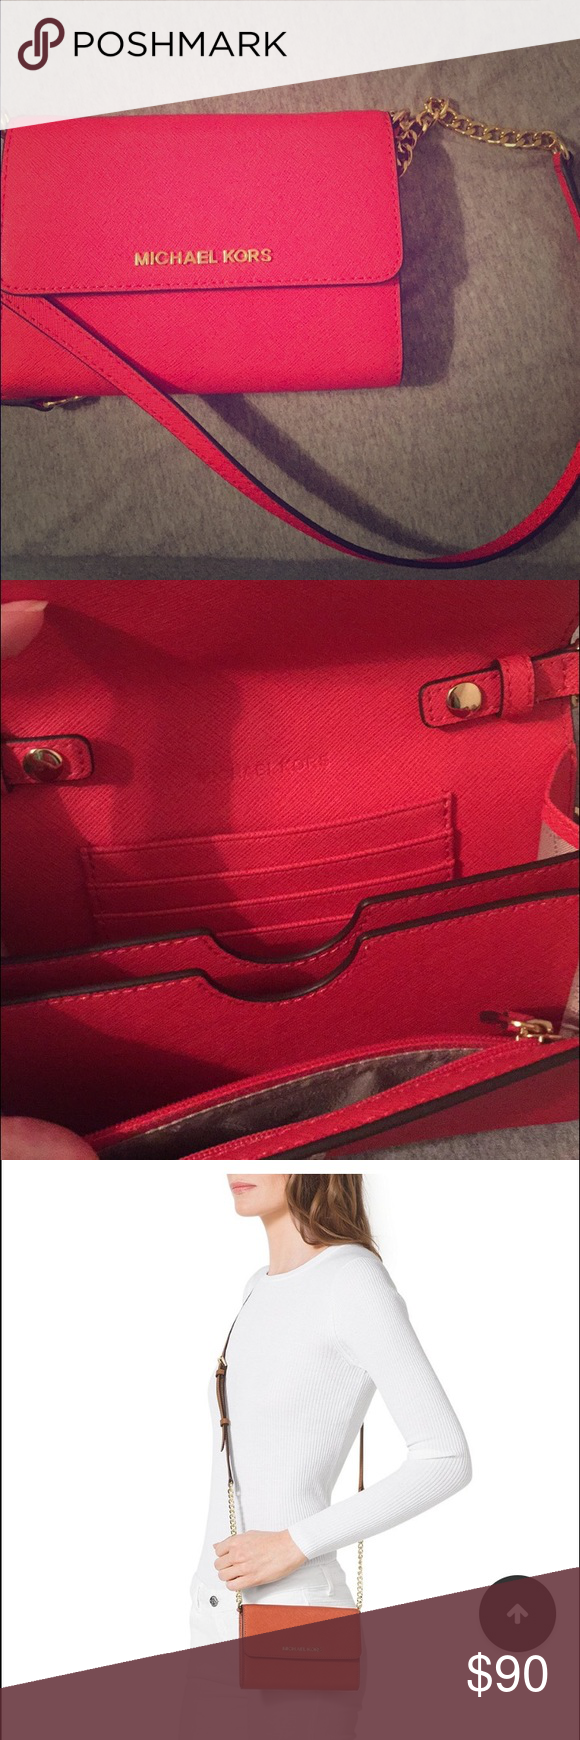 Michael Kors Jet Set Travel Phone Cross-Body Bag Brand new without tags. 100% authentic Michael Kors. Red color. Beautiful bag Michael Kors Bags Crossbody Bags